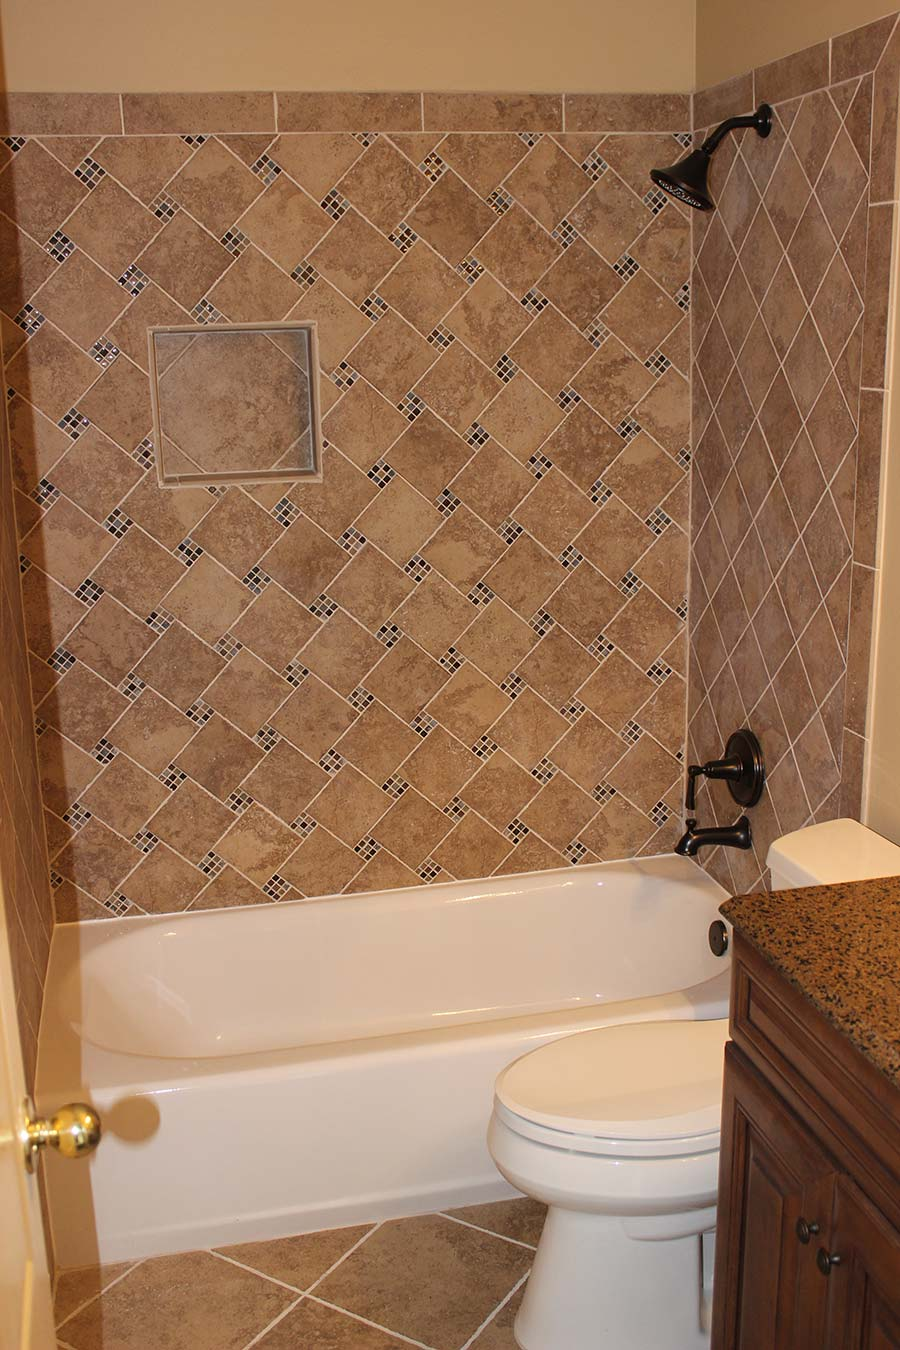 Bathroom Remodeling Lawrenceville Ga bathroom remodeling ideas | lawrenceville ga | northside